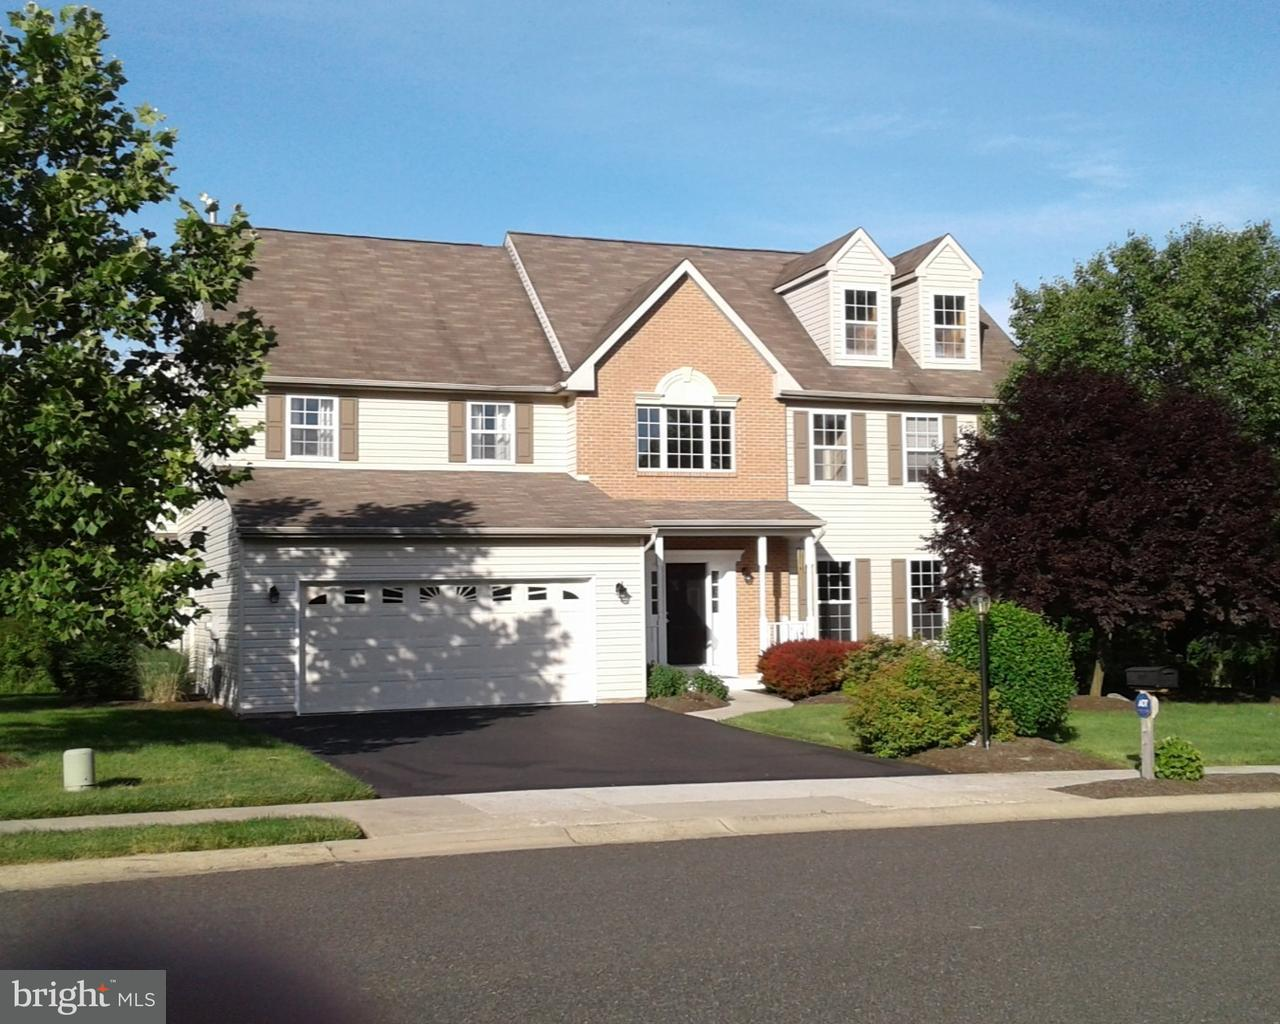 3884 Johnny Circle Collegeville, PA 19426